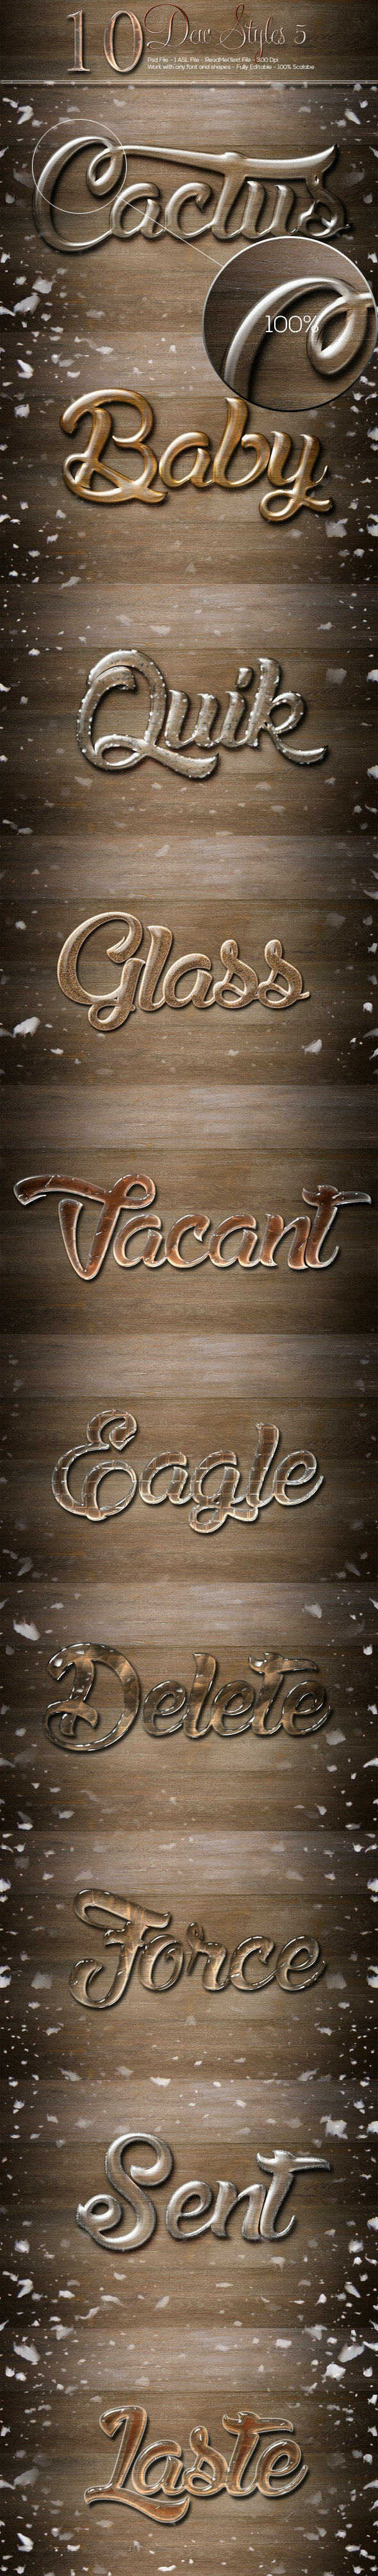 10 Dew Styles 5 - Text Effects Styles